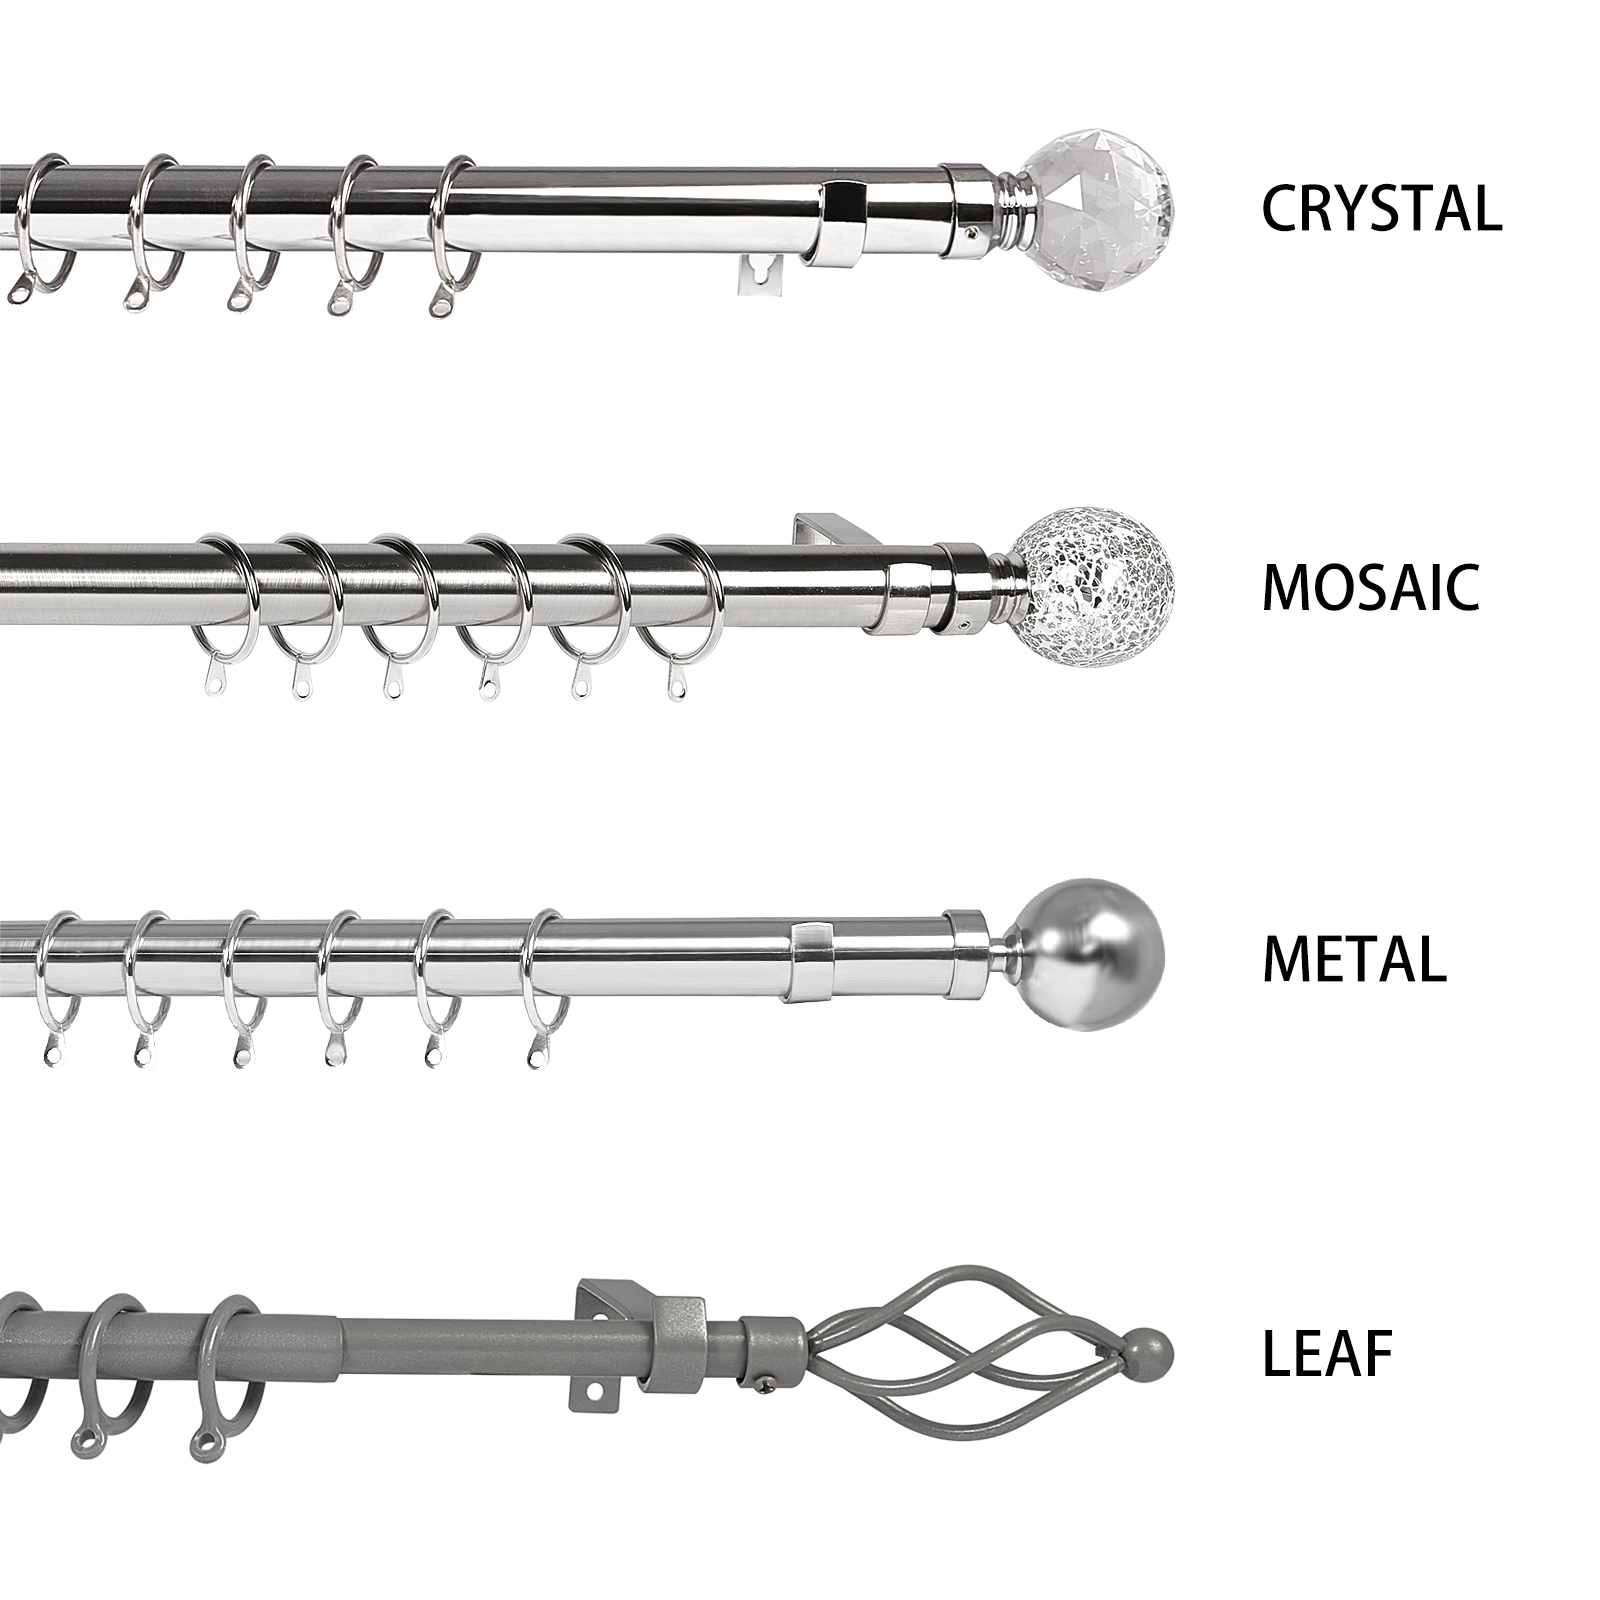 2 Polished Chrome Silver 16//19mm Extendable Curtain Pole Finials Ends Push Fit